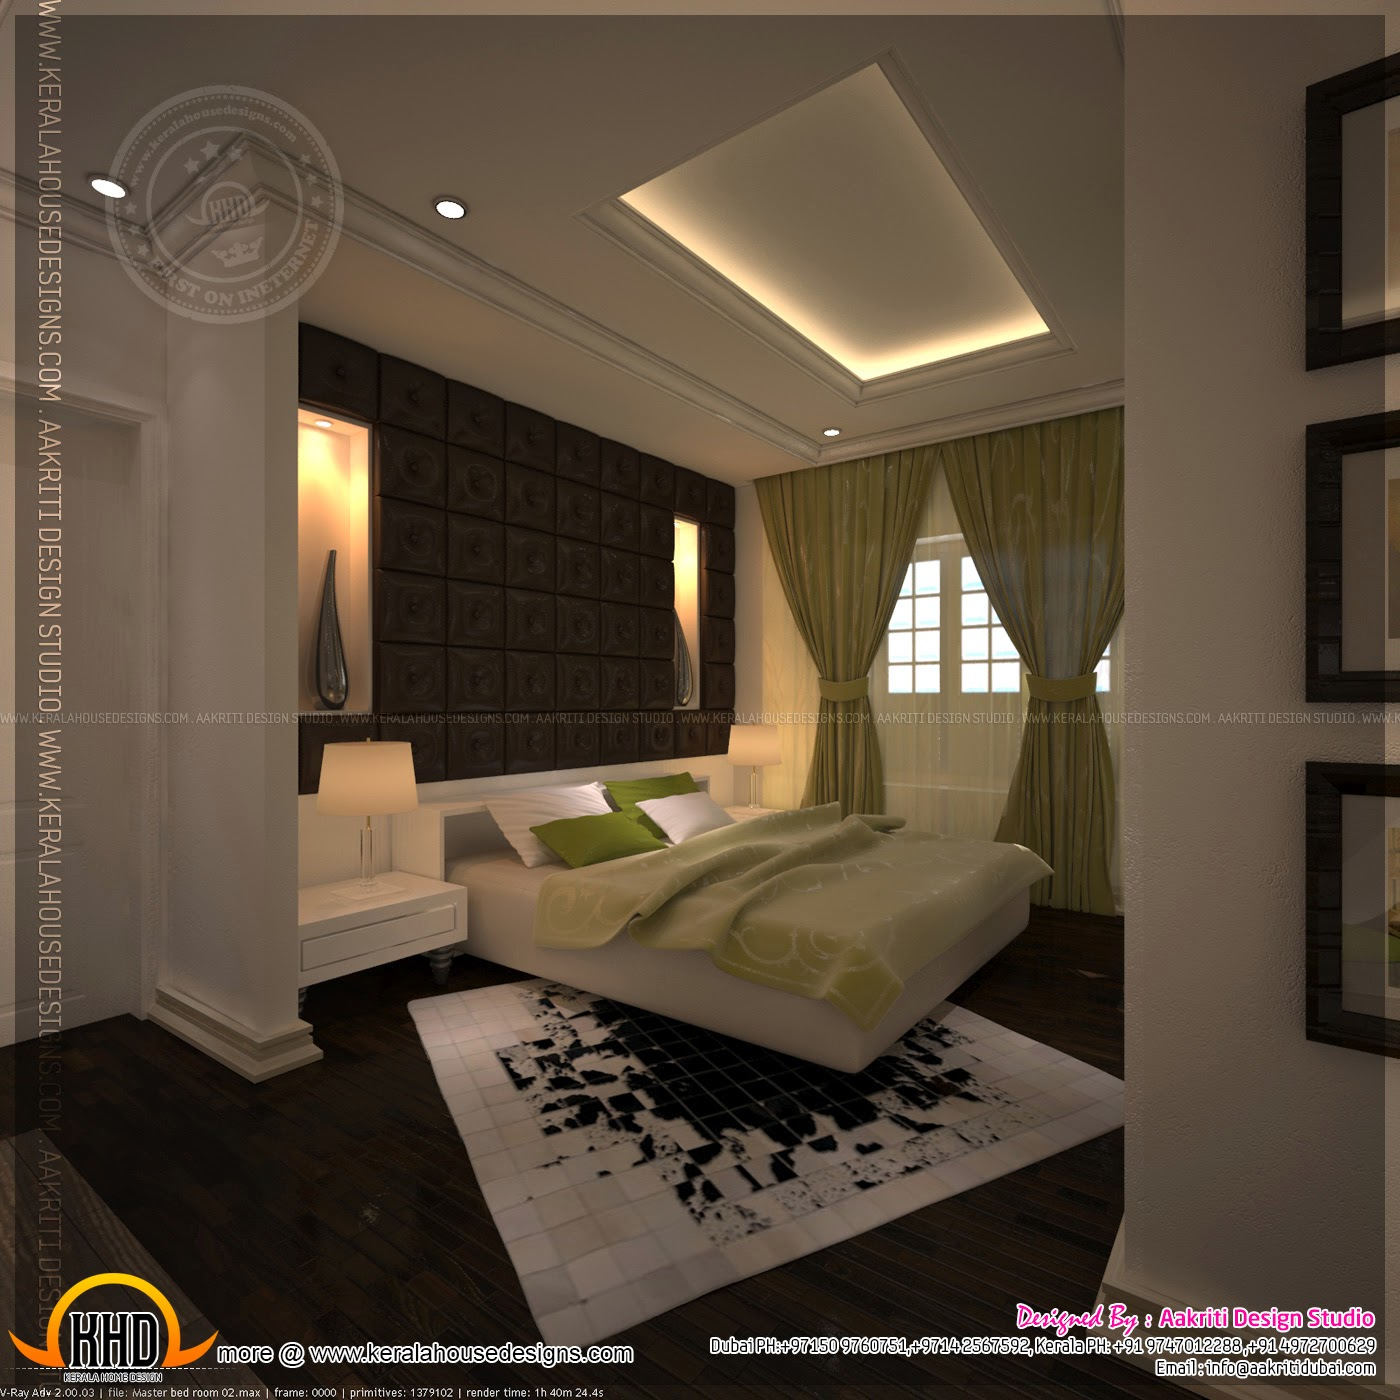 Master bedroom and bathroom interior design kerala home design and floor plans Home interior wardrobe design